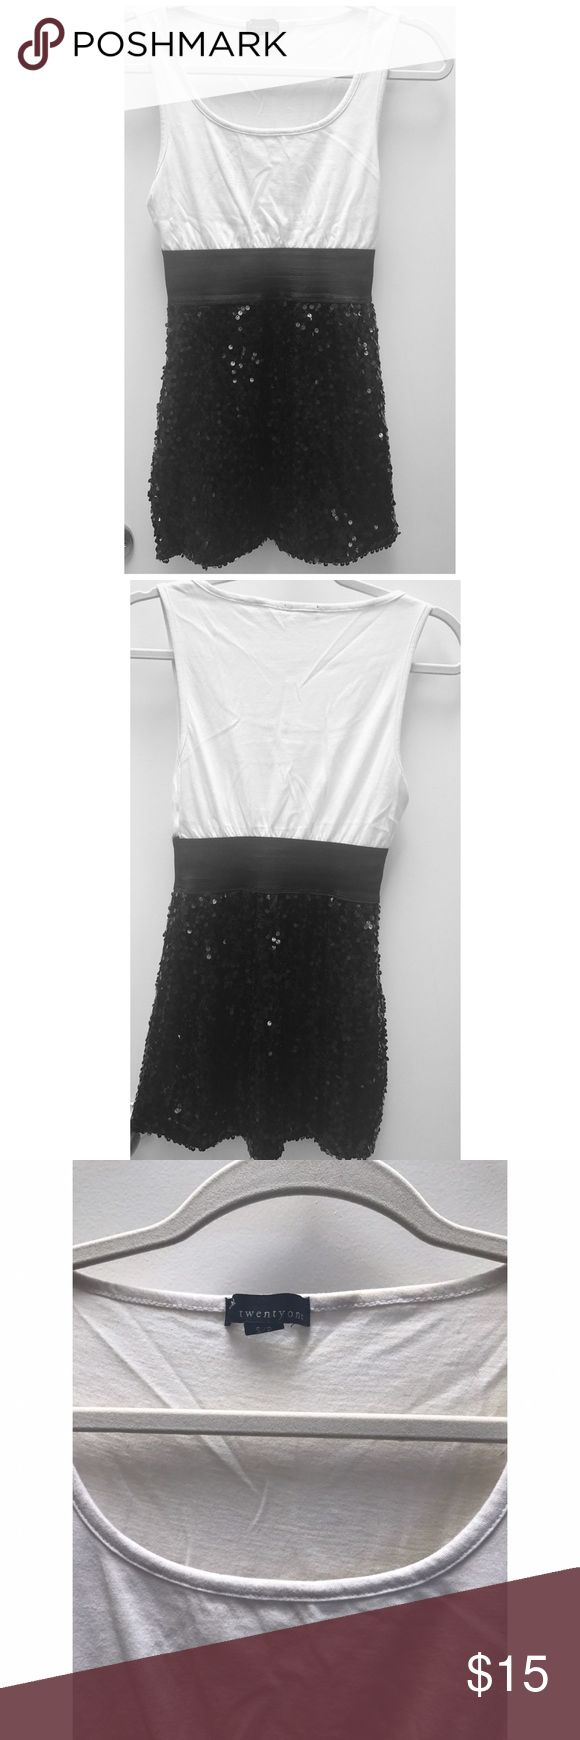 Black and White Sequin Dress Black and White Sequin Dress. Stretchy waistband. Mini dress. Forever 21 Dresses Mini